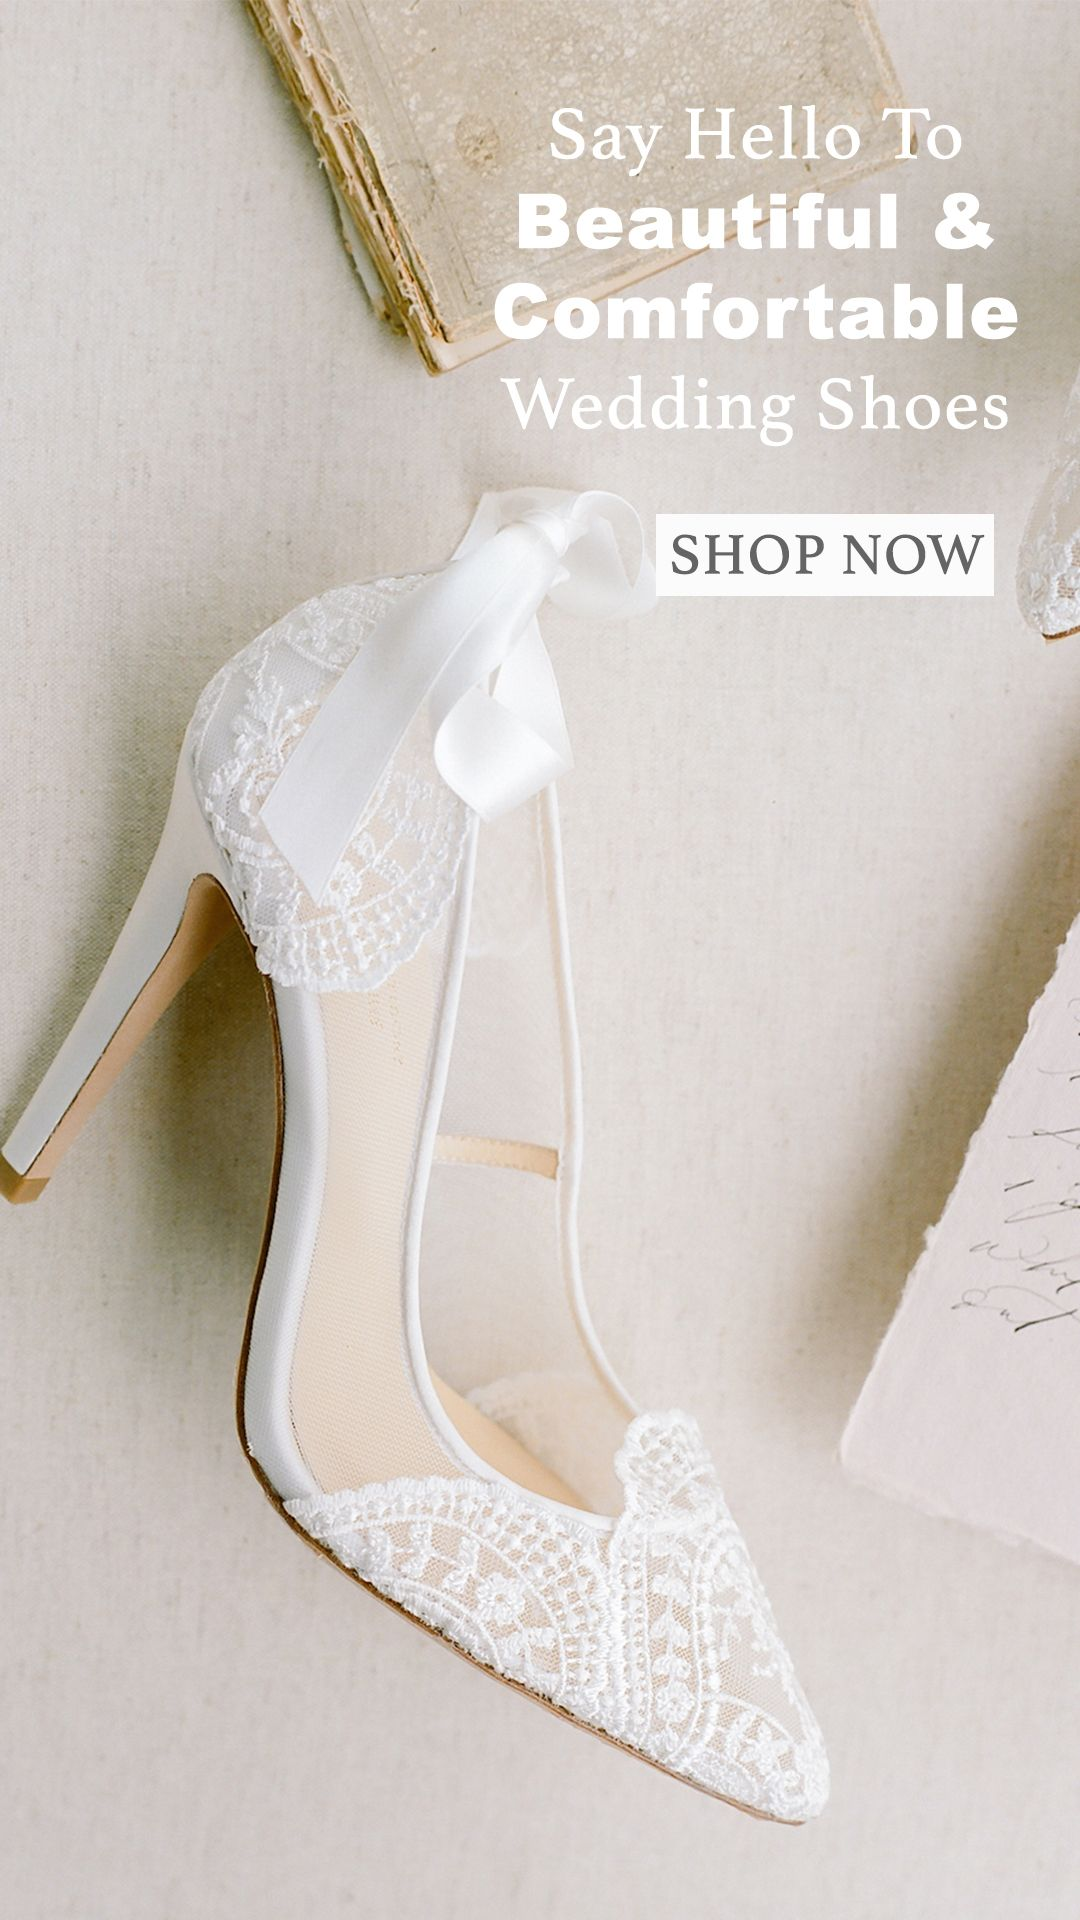 Stunning Comfortable Lace Wedding Shoes In 2020 Wedding Shoes Lace Wedding Shoes Embellished Wedding Shoes